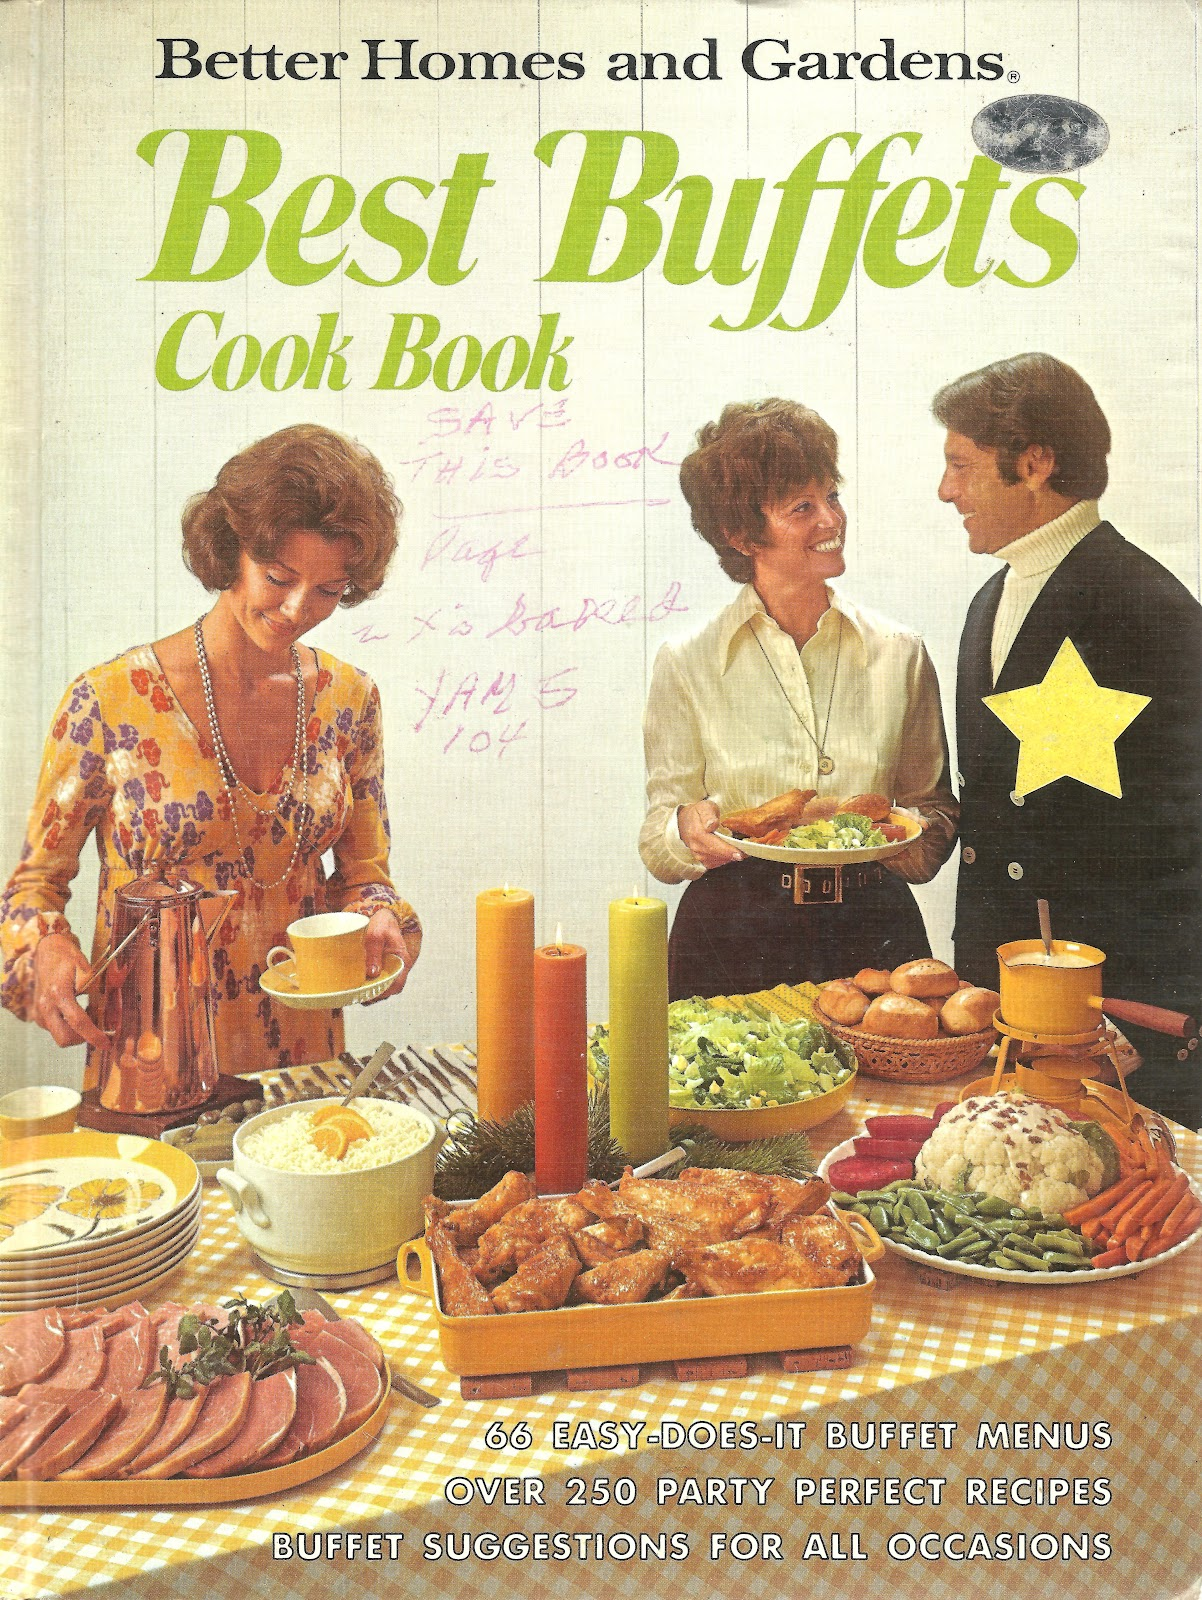 better homes and gardens best buffets cookbook 1974 i was a fetus or a newborn most of that year so i was late for the party - Buffet Retro Cuisine